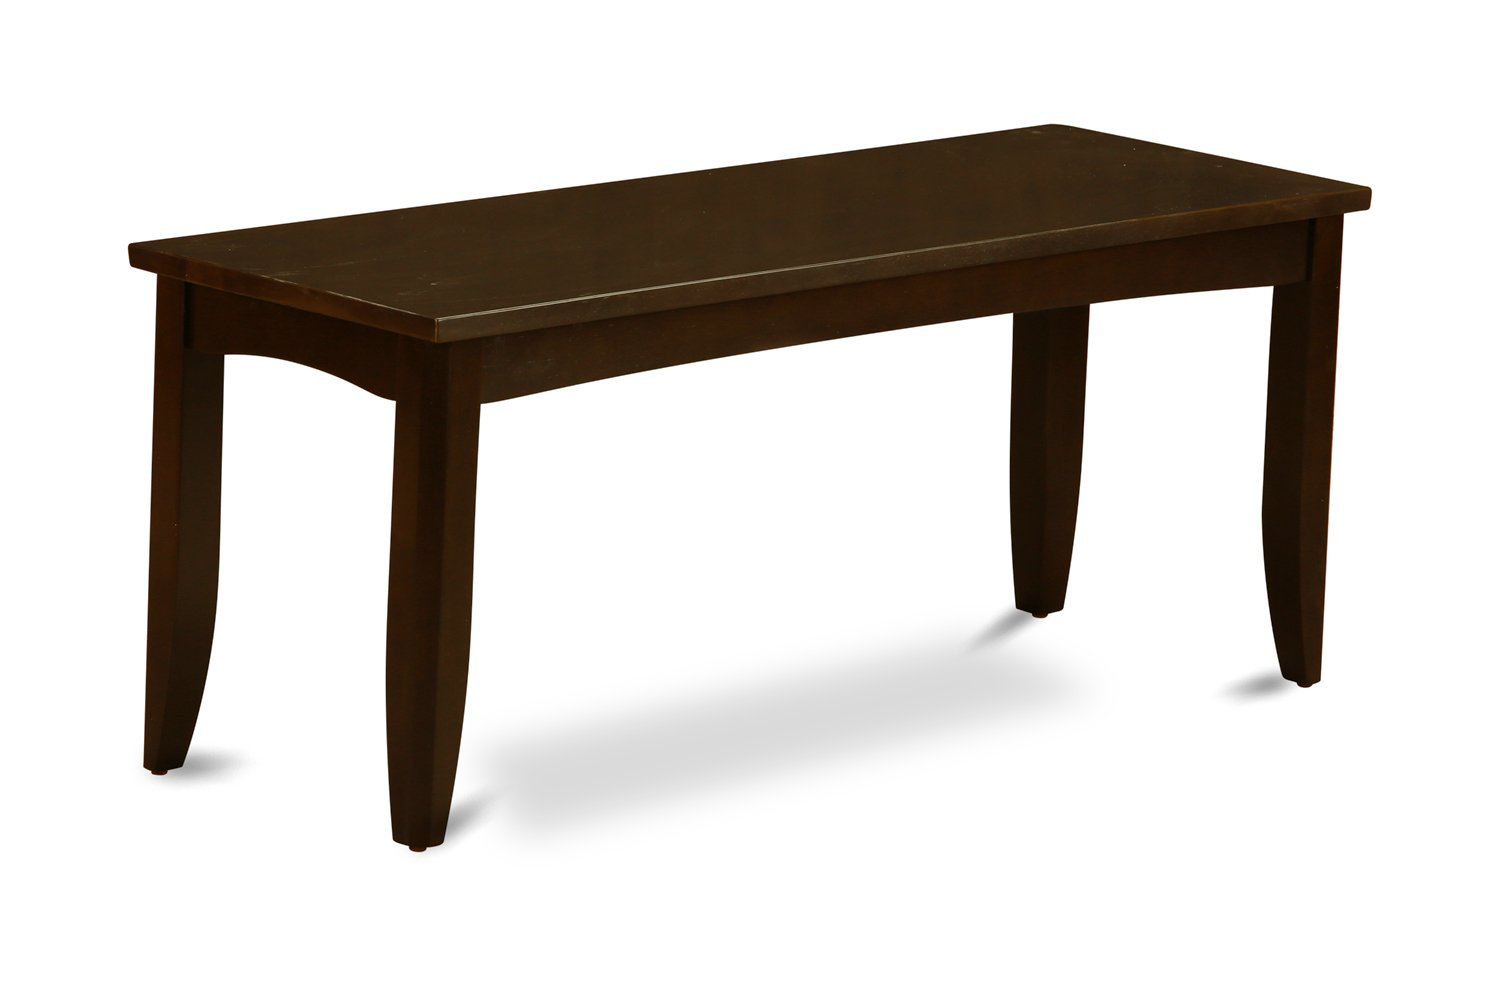 East West Furniture Dining Bench with Wood Seat, Cappuccino Finish by East West Furniture